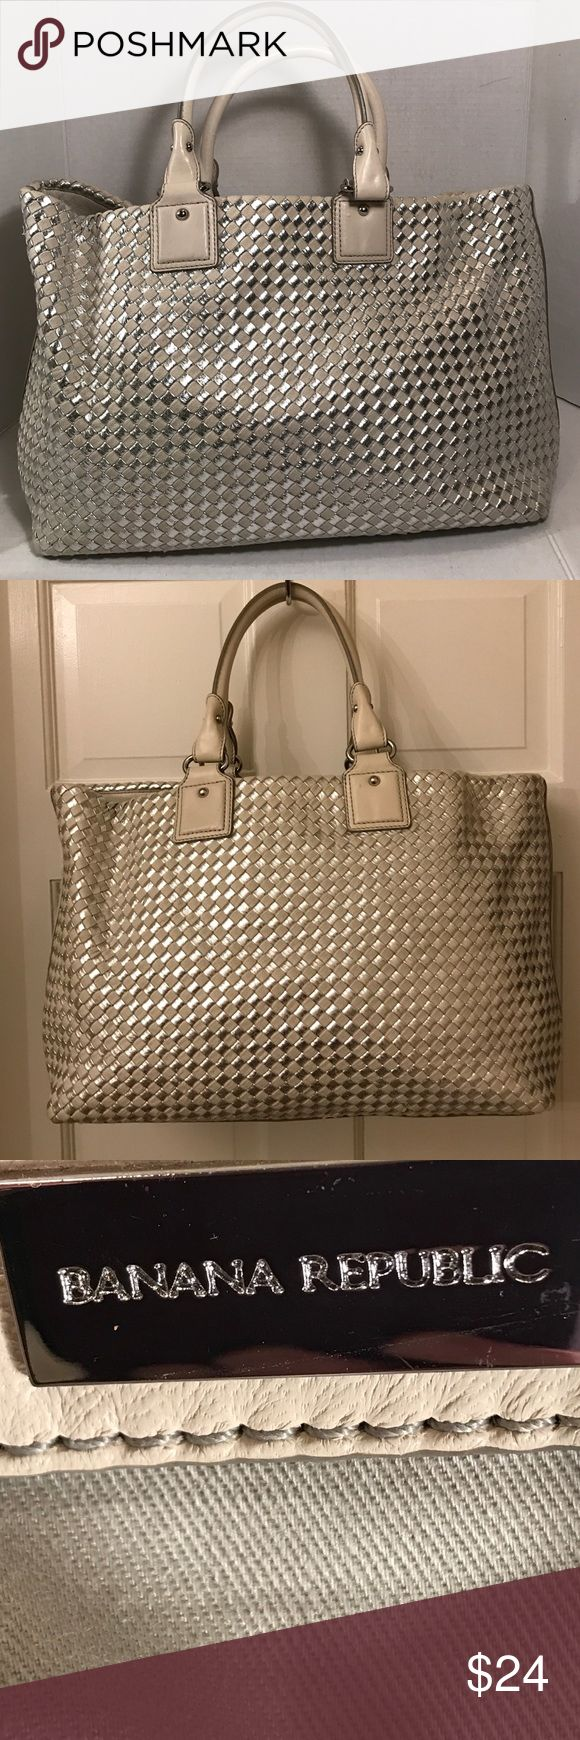 """Banana Republic large tote Metallic silver and cream colored design. Shell is cotton and polyurethane. Coating is rayon. Trim is lamb leather. Tote bag is large and sturdy to hold many items. In good preloved condition. Has a few nicks on straps and bottom that are so very tiny. Interior very clean in bottom but soiled slightly near zipper pocket. See pic4. 15.5"""" x 5.5"""" x 12"""" x 7"""" strap drop Banana Republic Bags Totes"""